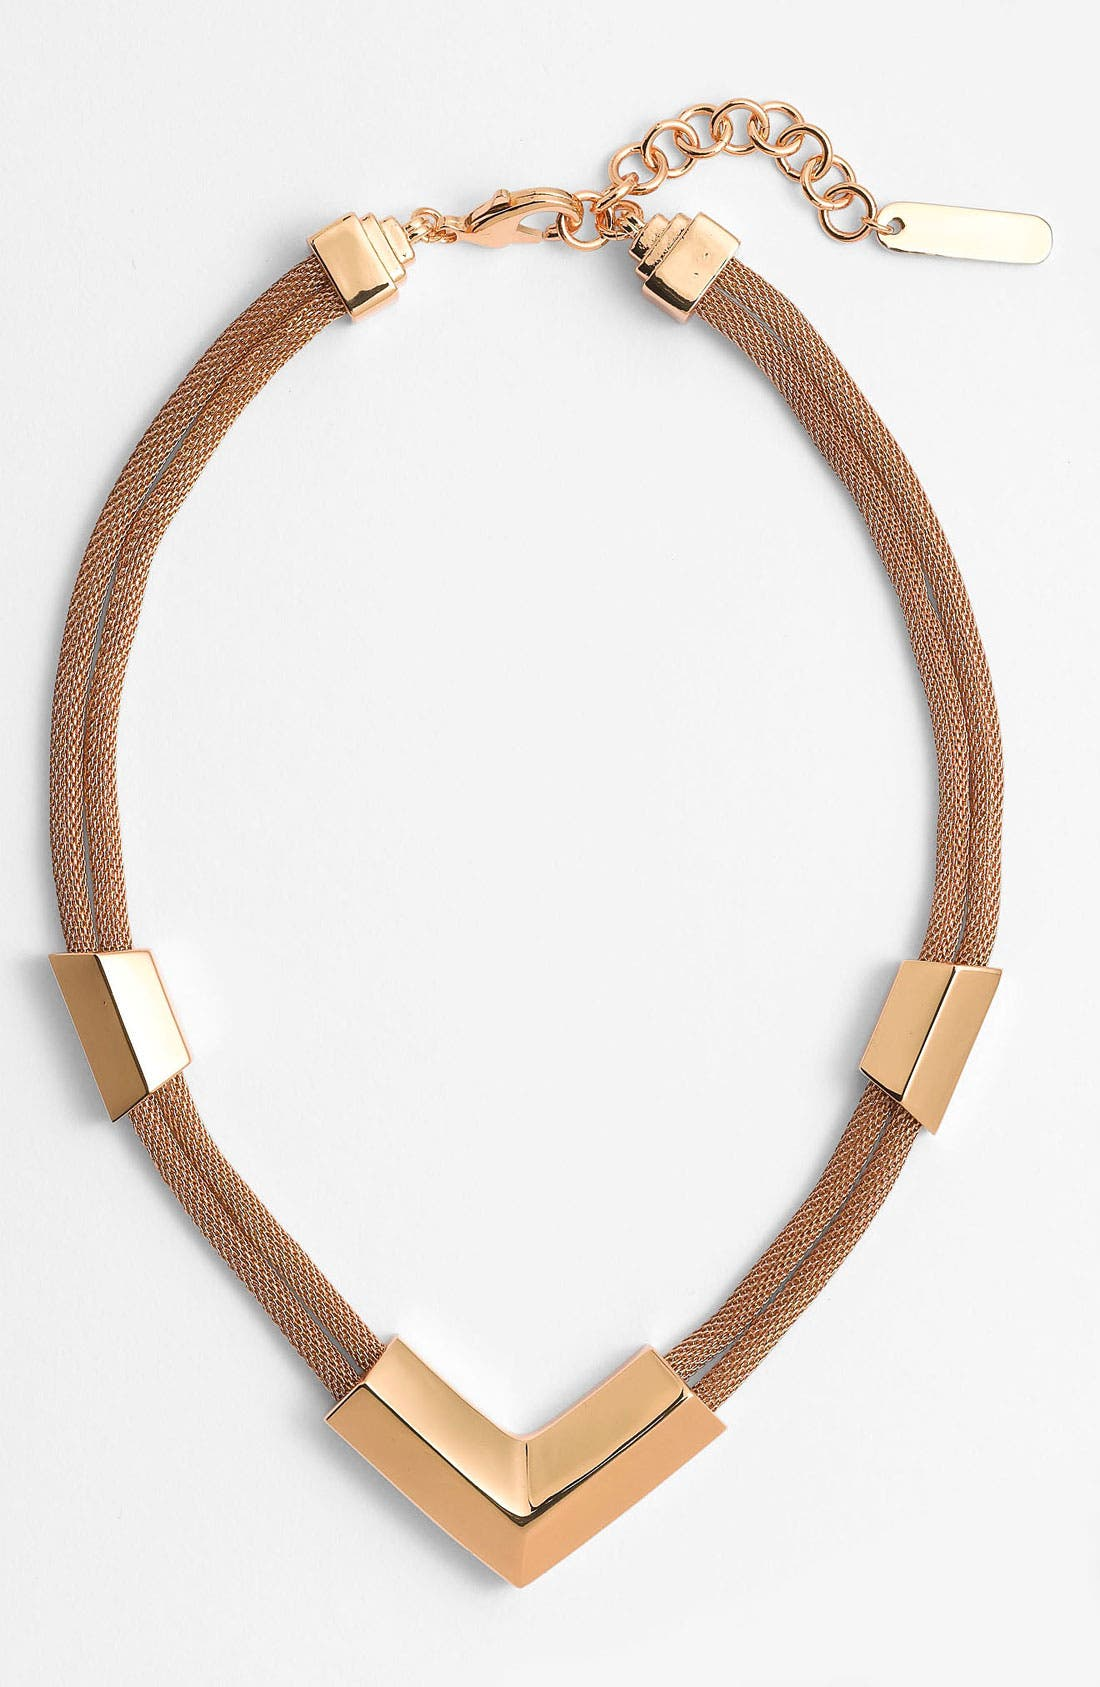 Main Image - Vince Camuto 'Clean Slate' Collar Necklace